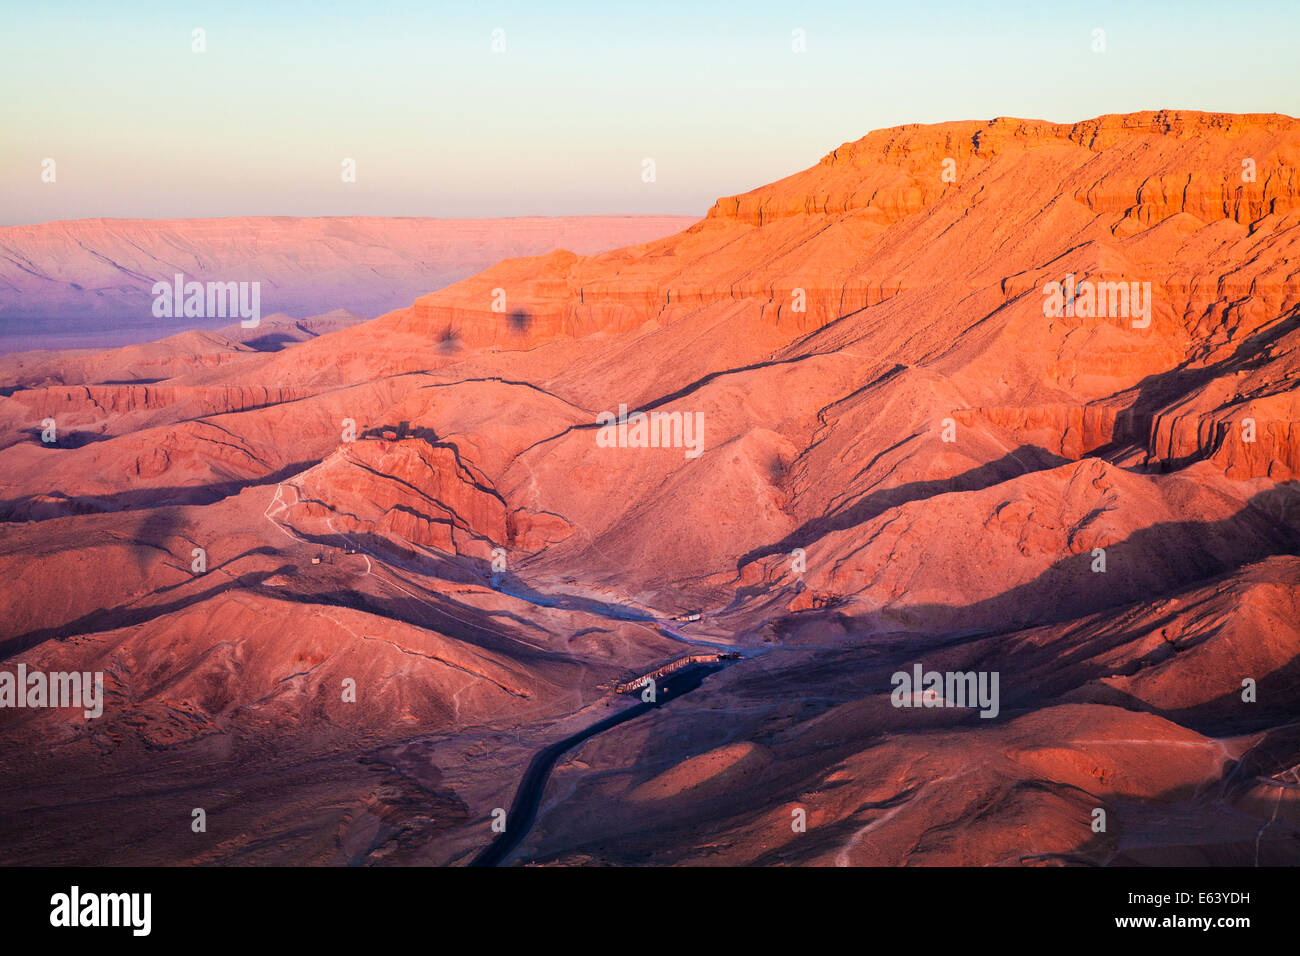 Aerial view of the desert landscape of the Valley of the Kings on West Bank of the Nile in Egypt. - Stock Image